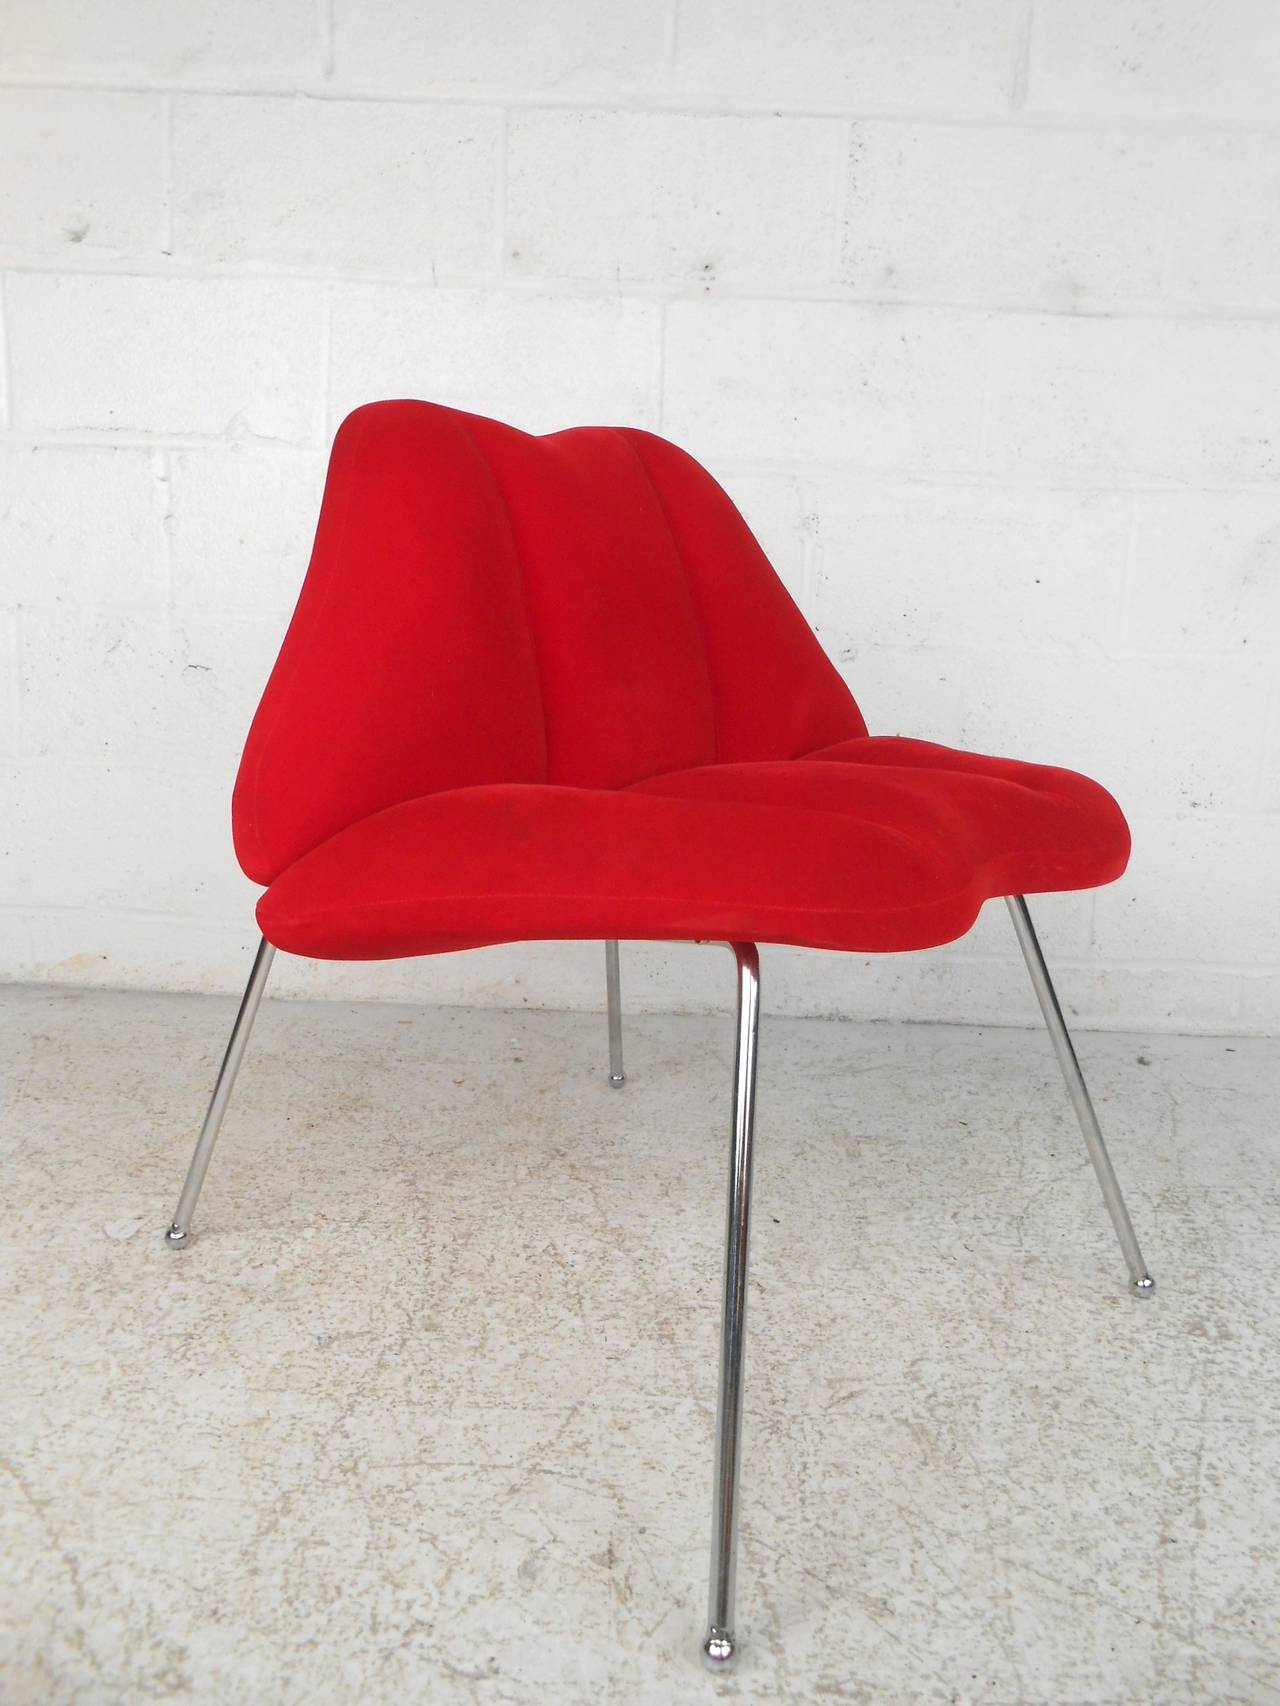 Attractive Bold And Fun Side Chair In The Shape Of Ruby Red Lips. Set On Slender